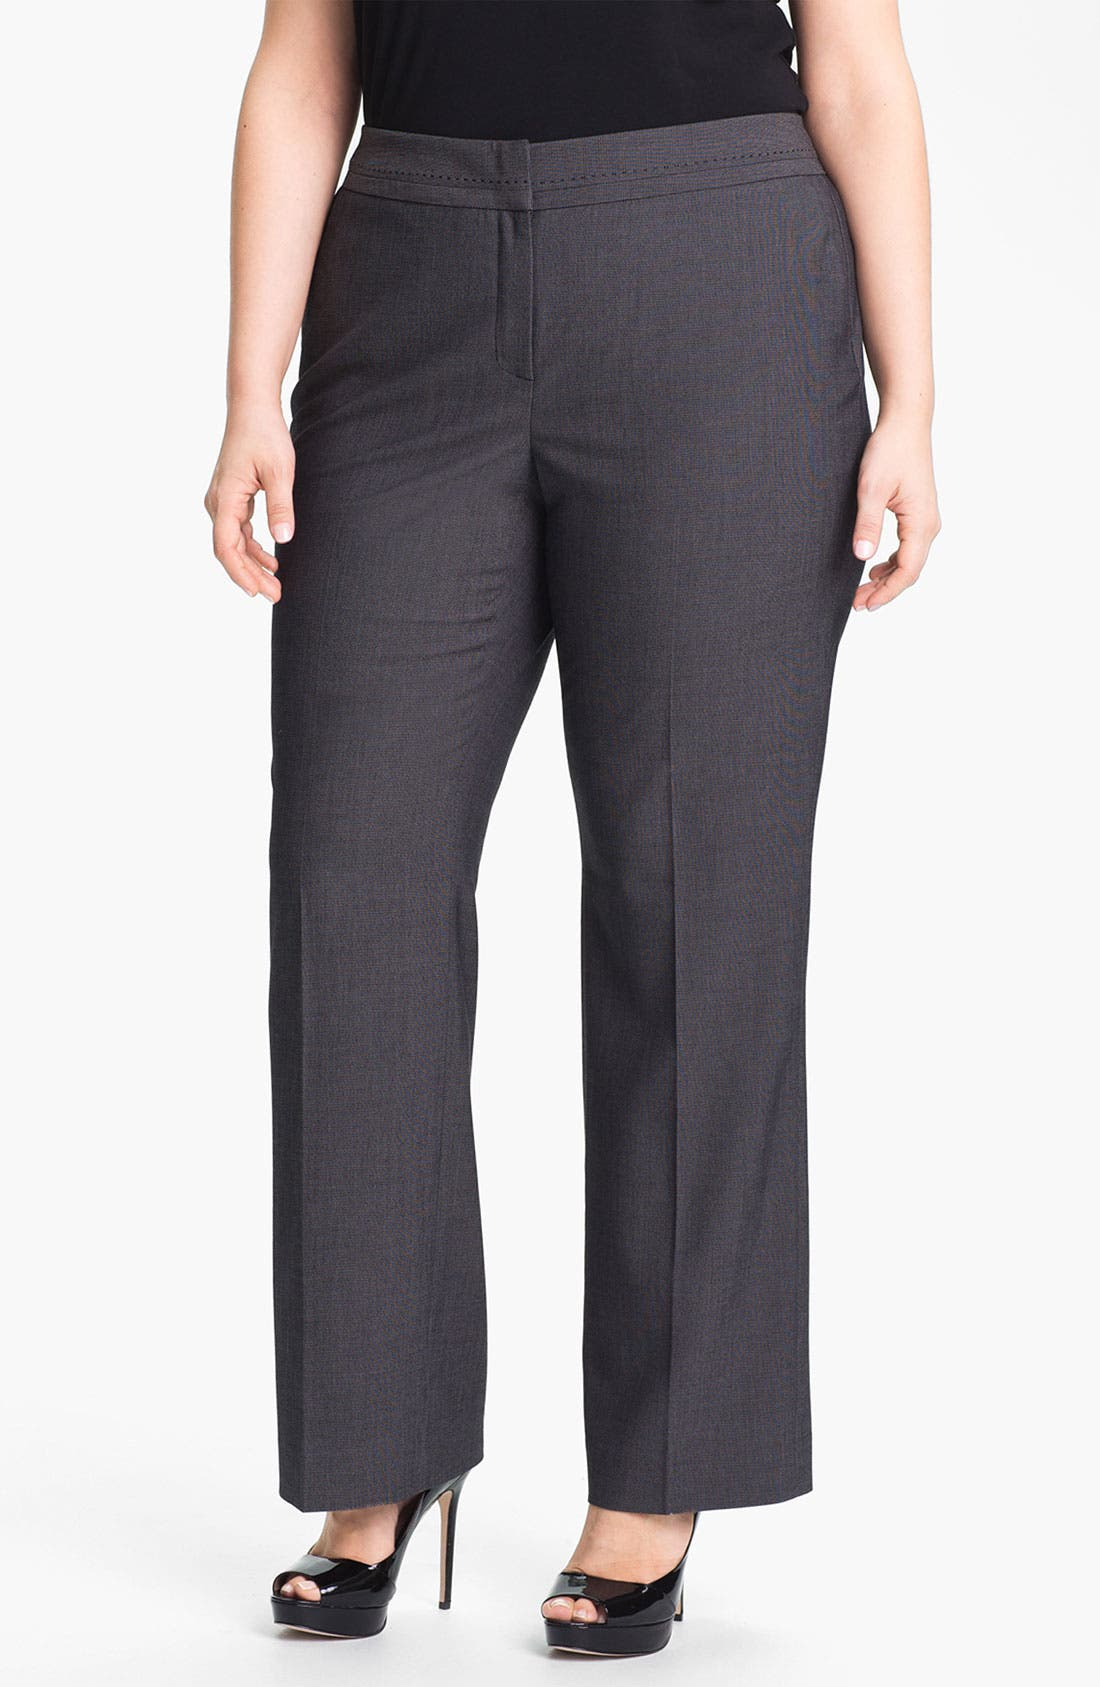 Alternate Image 1 Selected - Sejour 'Zola' Twill Suit Trousers (Plus)